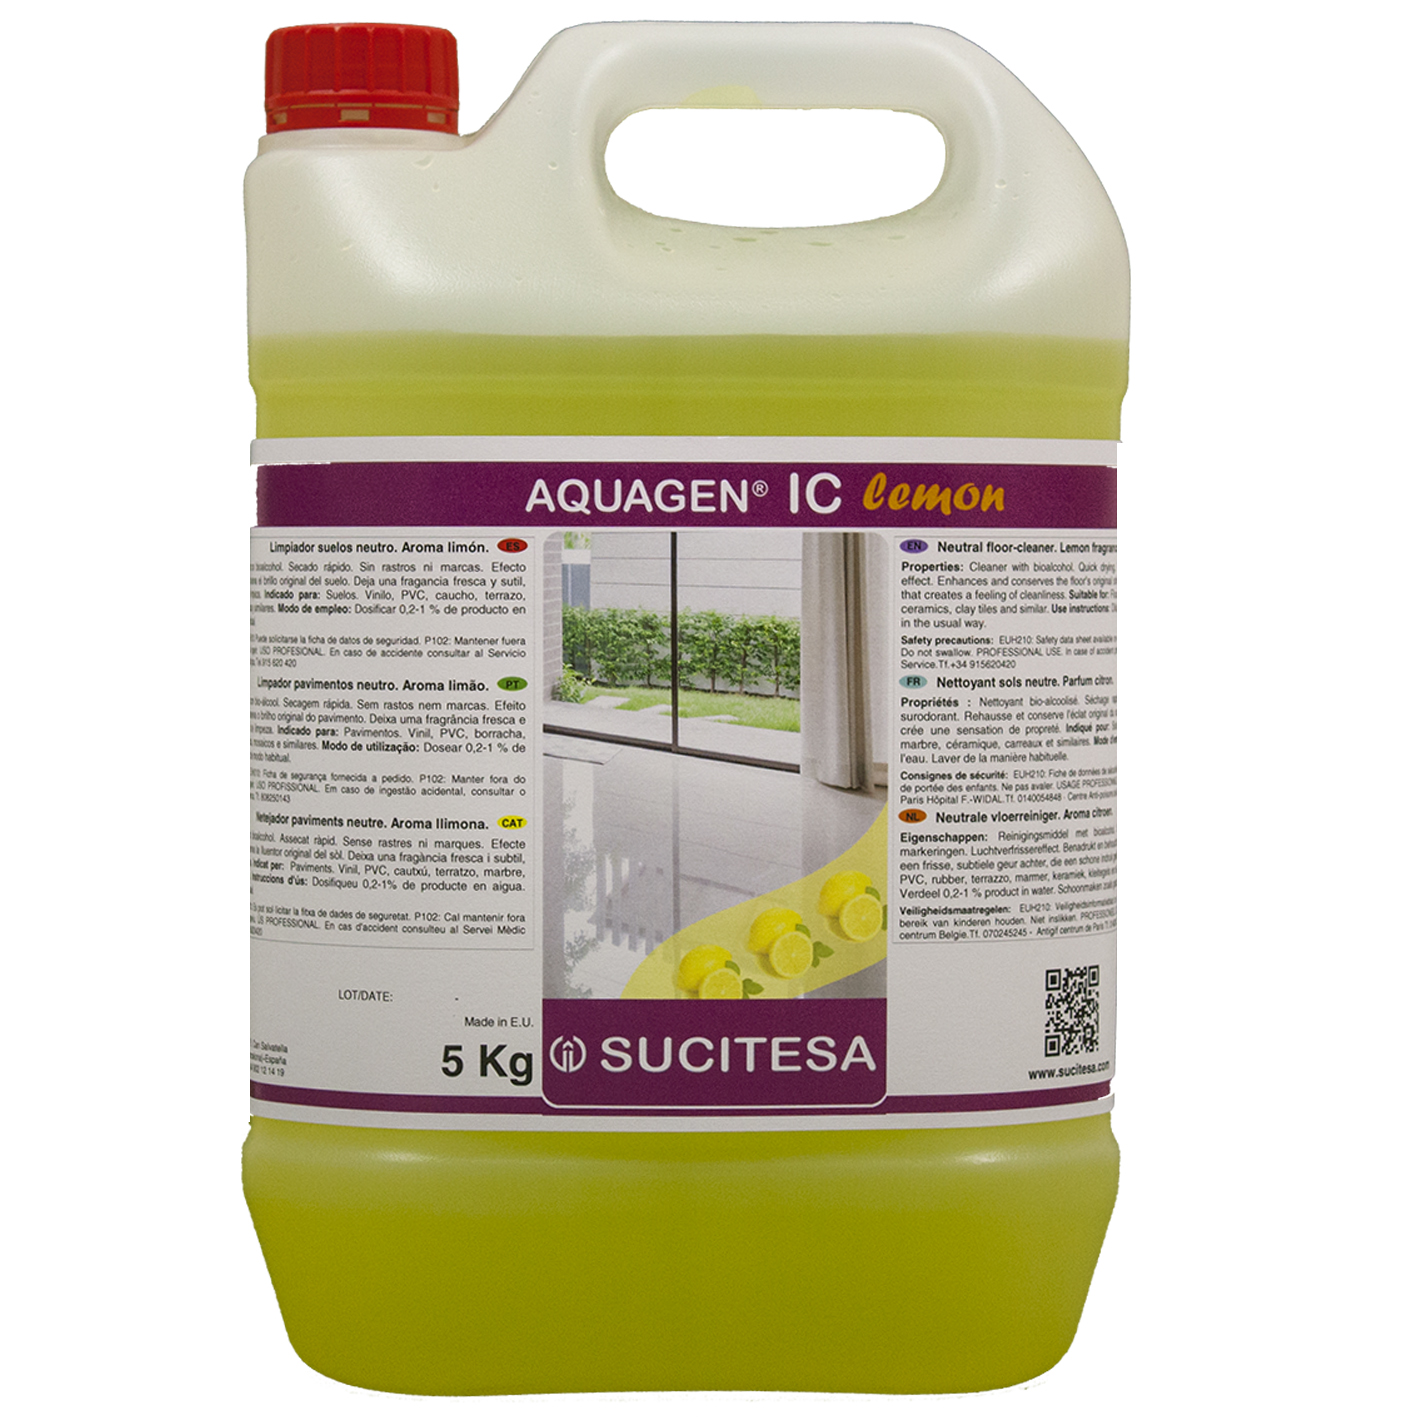 AQUAGEN IC LEMON 5l Image